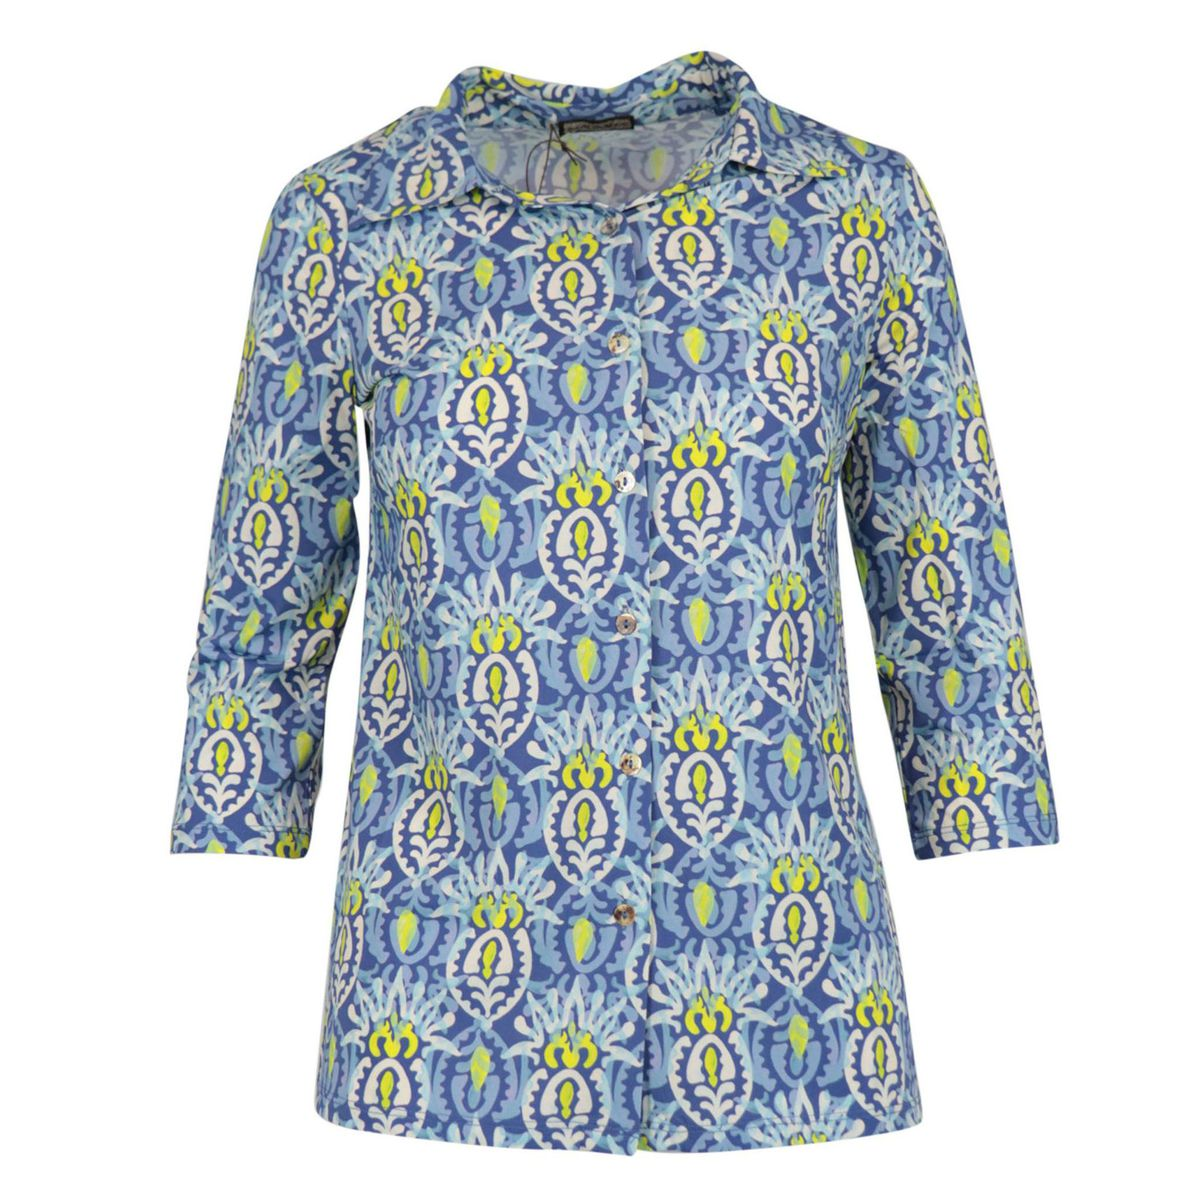 Patterned stretch jersey shirt with three-quarter sleeves Blue / pink Maliparmi